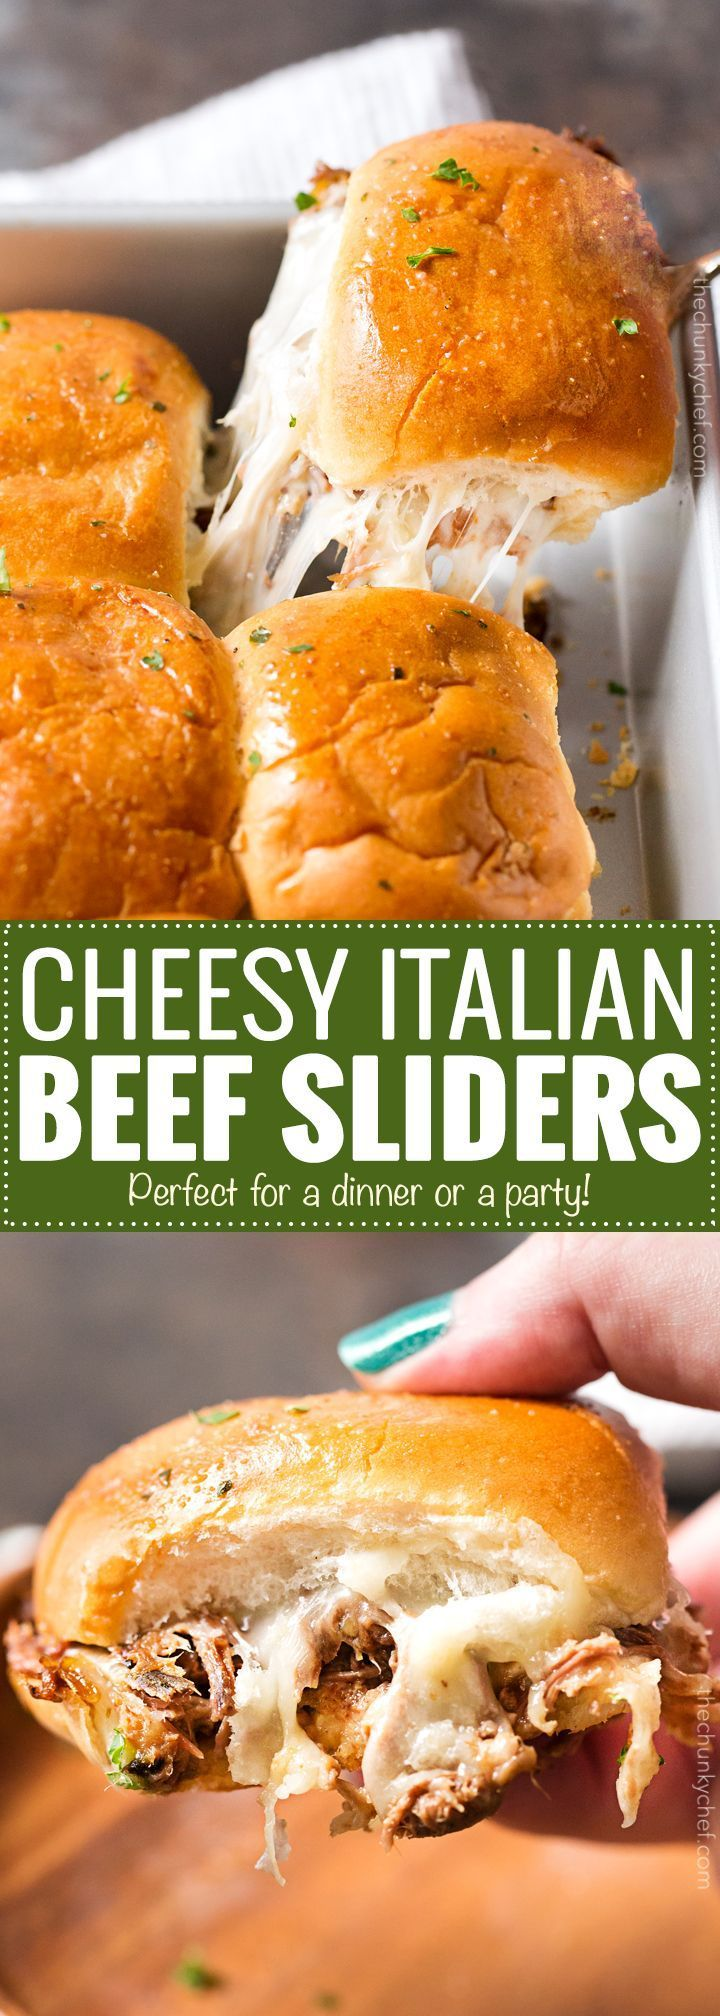 Baked Italian Beef Sliders   Slider buns are piled high with shredded Italian beef and gooey provolone cheese, brushed with melted garlic butter and baked until gooey and mouthwatering!   http://thechunkychef.com